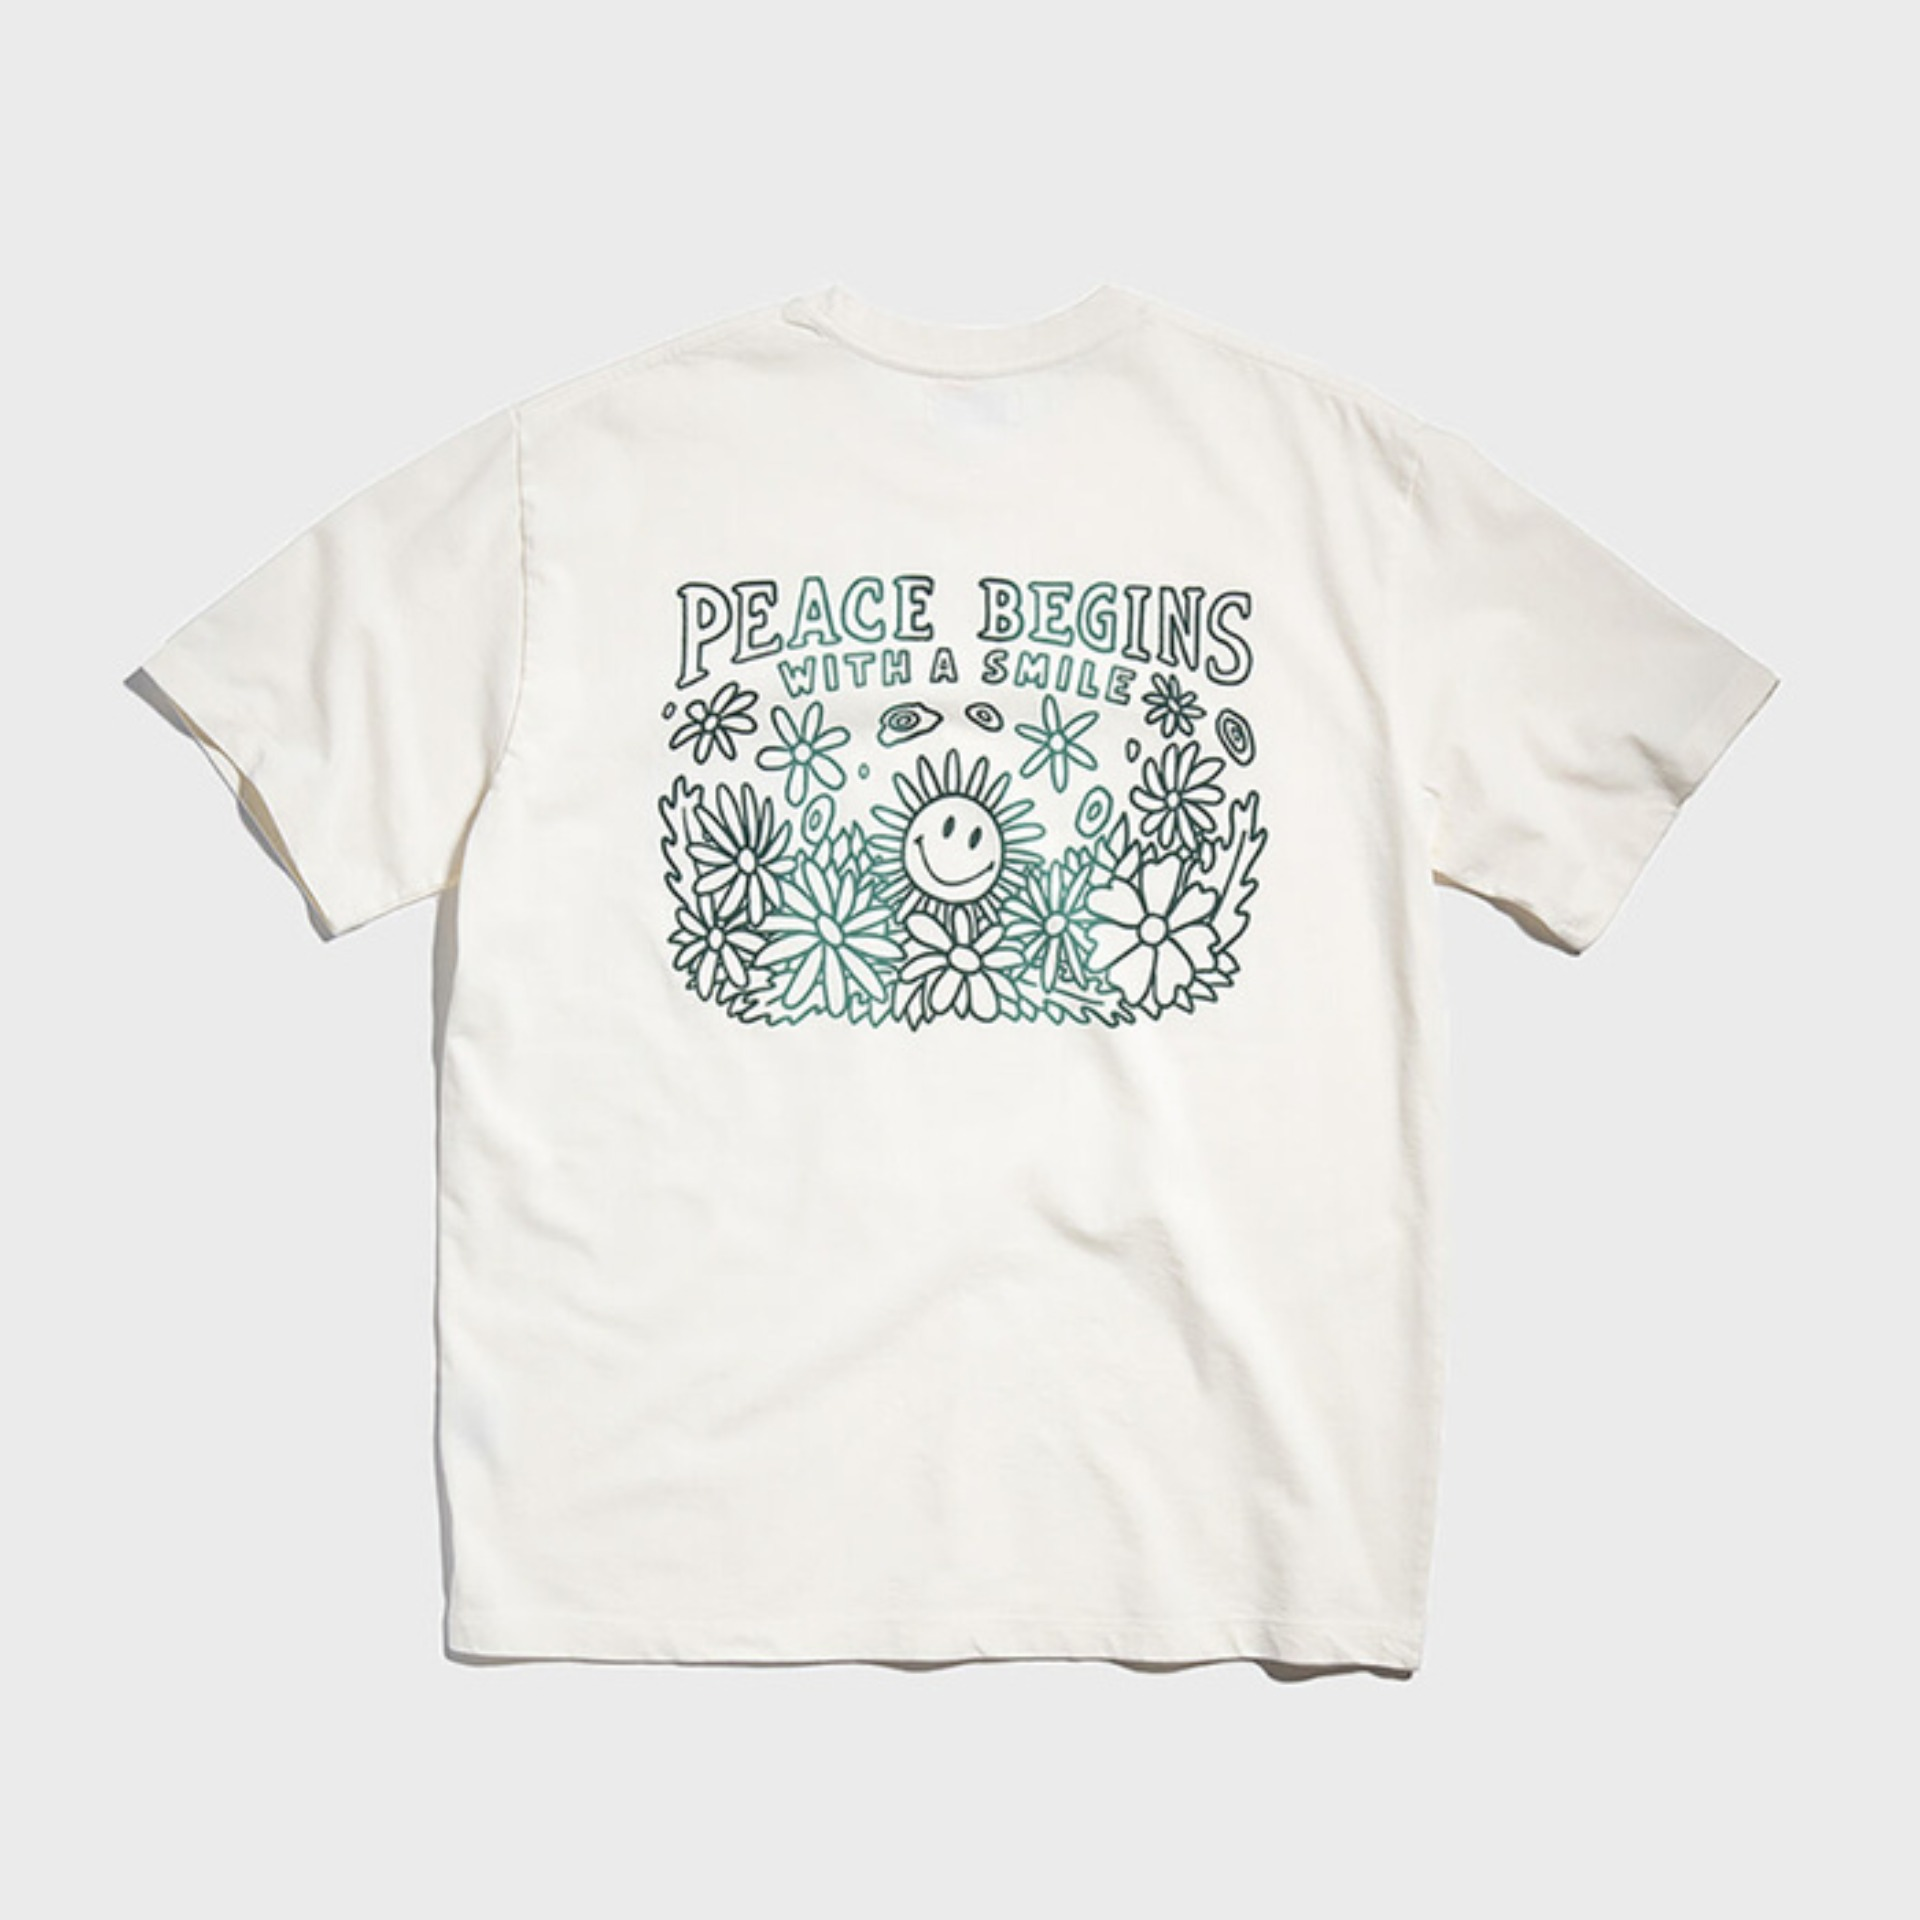 PEACE BEGINS TEE PART 2 (Off White)